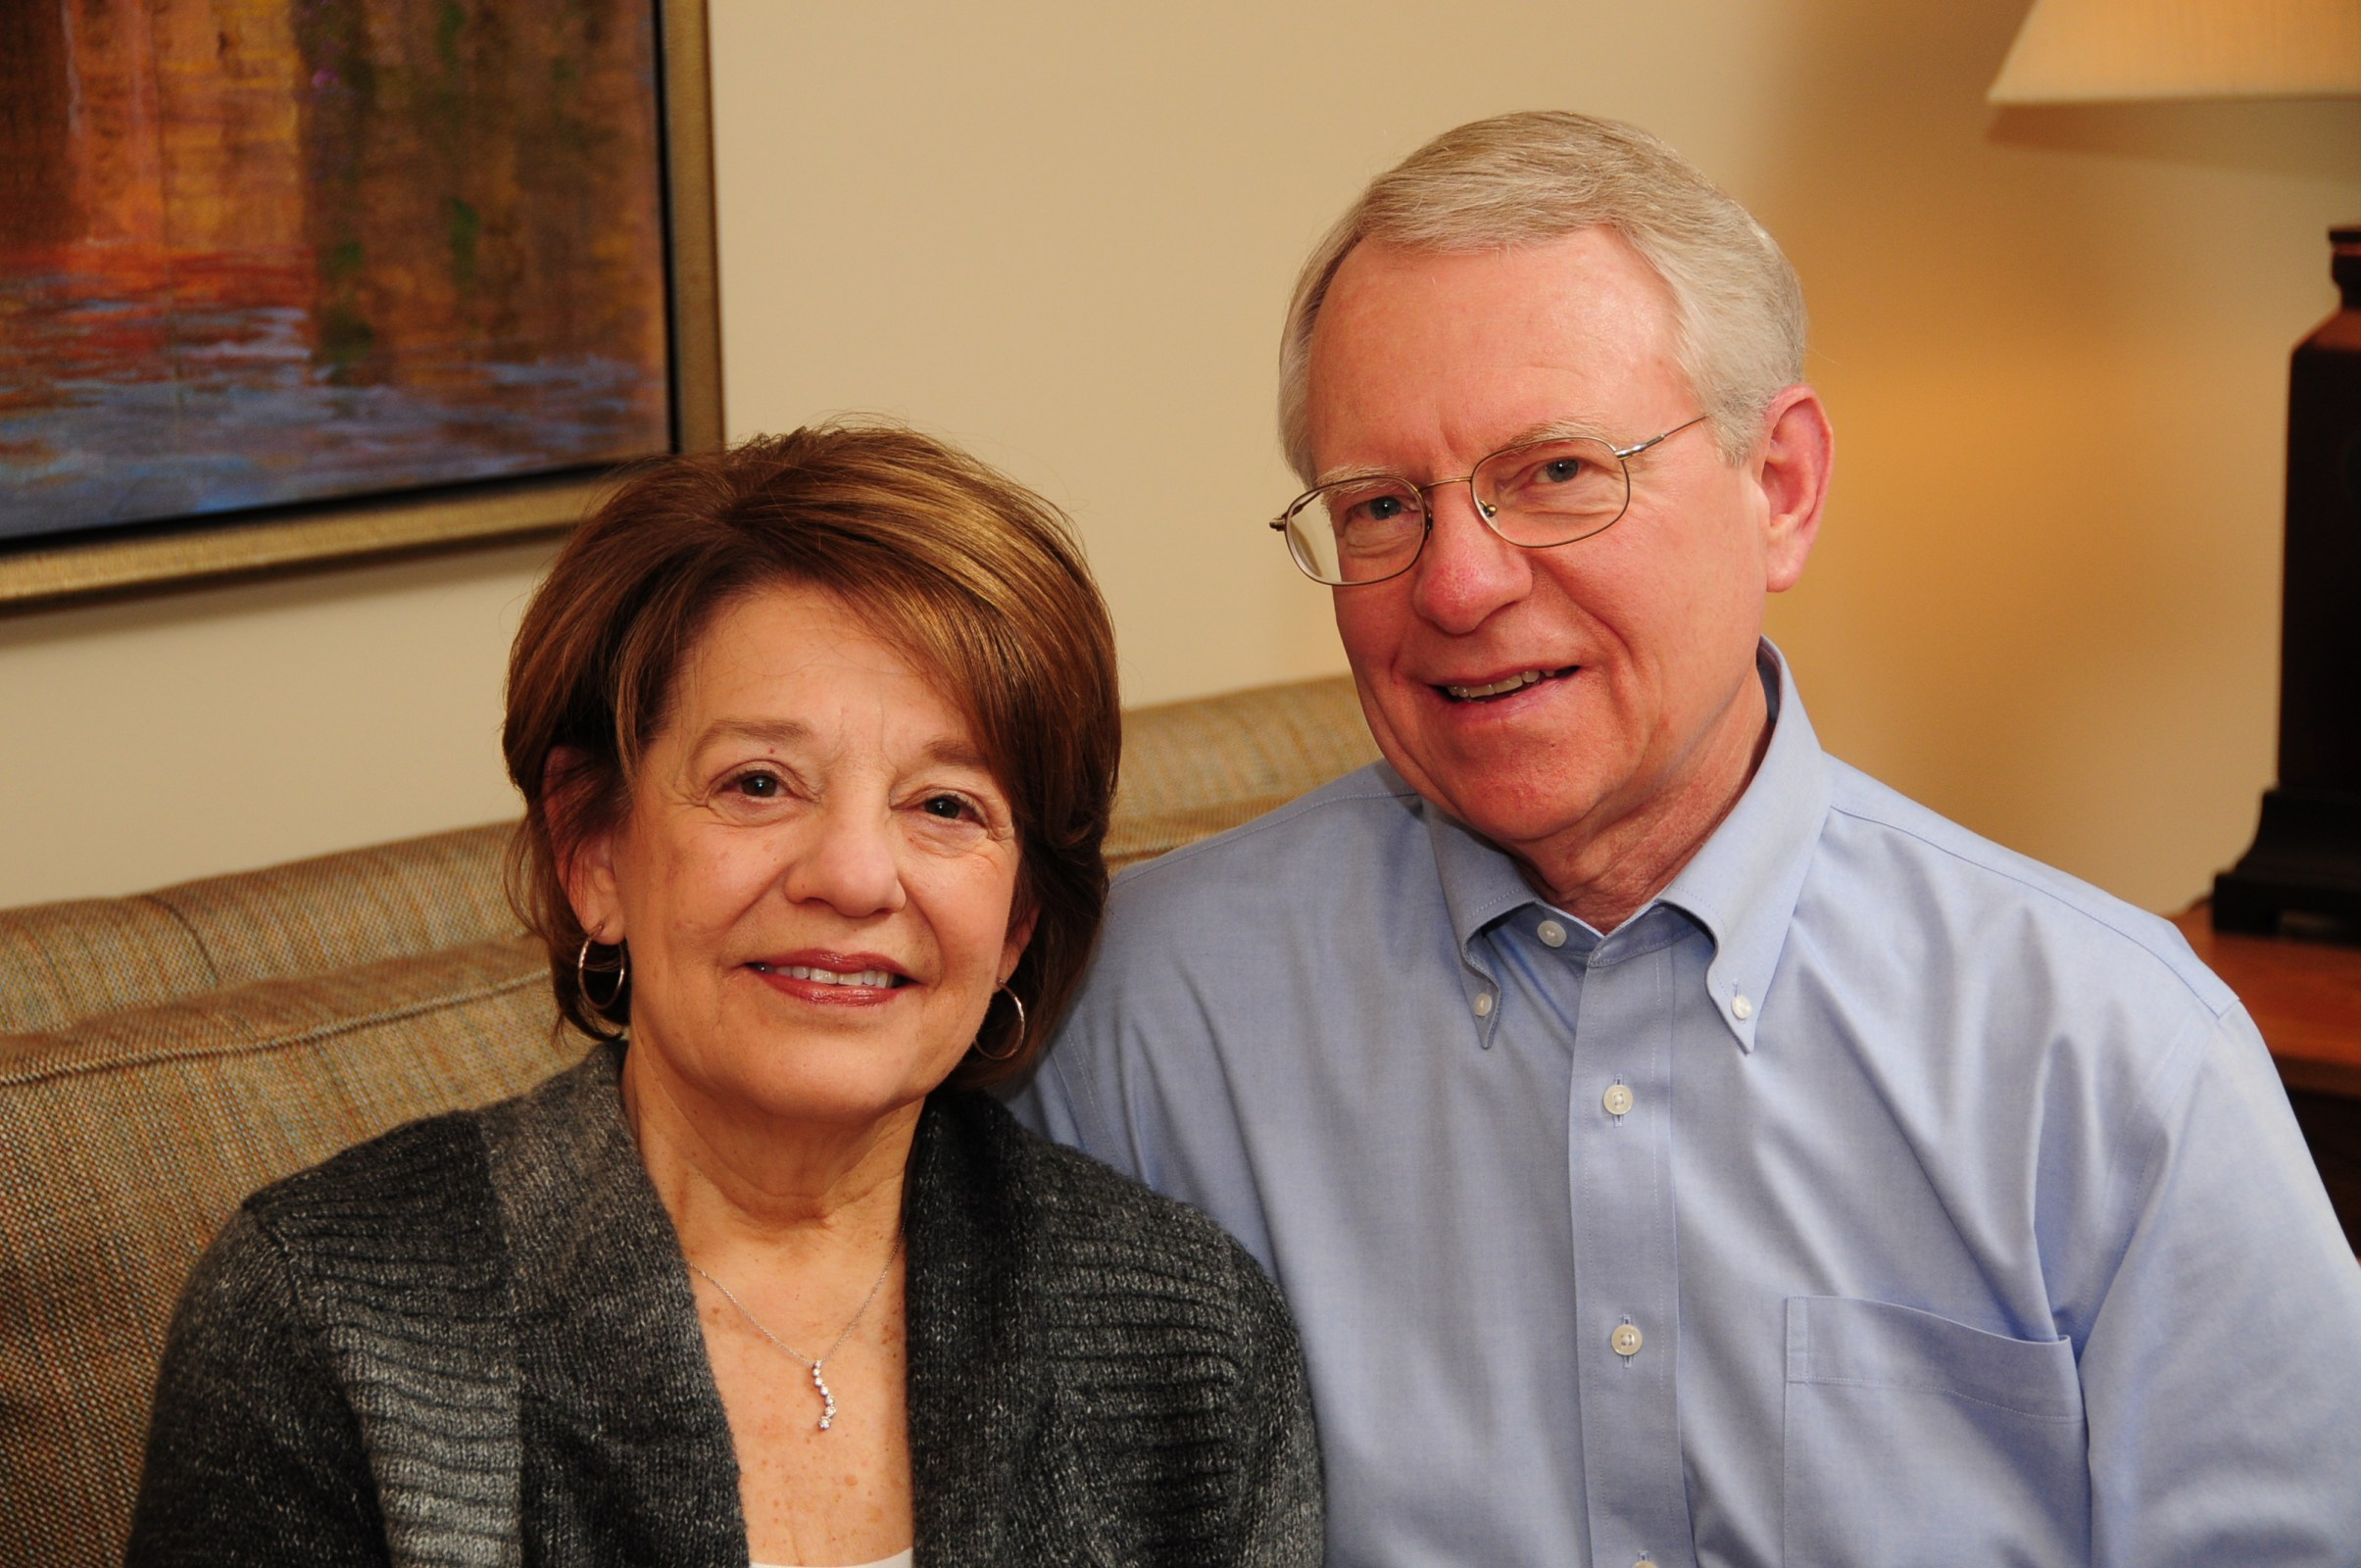 Steve and Joanne Carfrae Care for Their Community